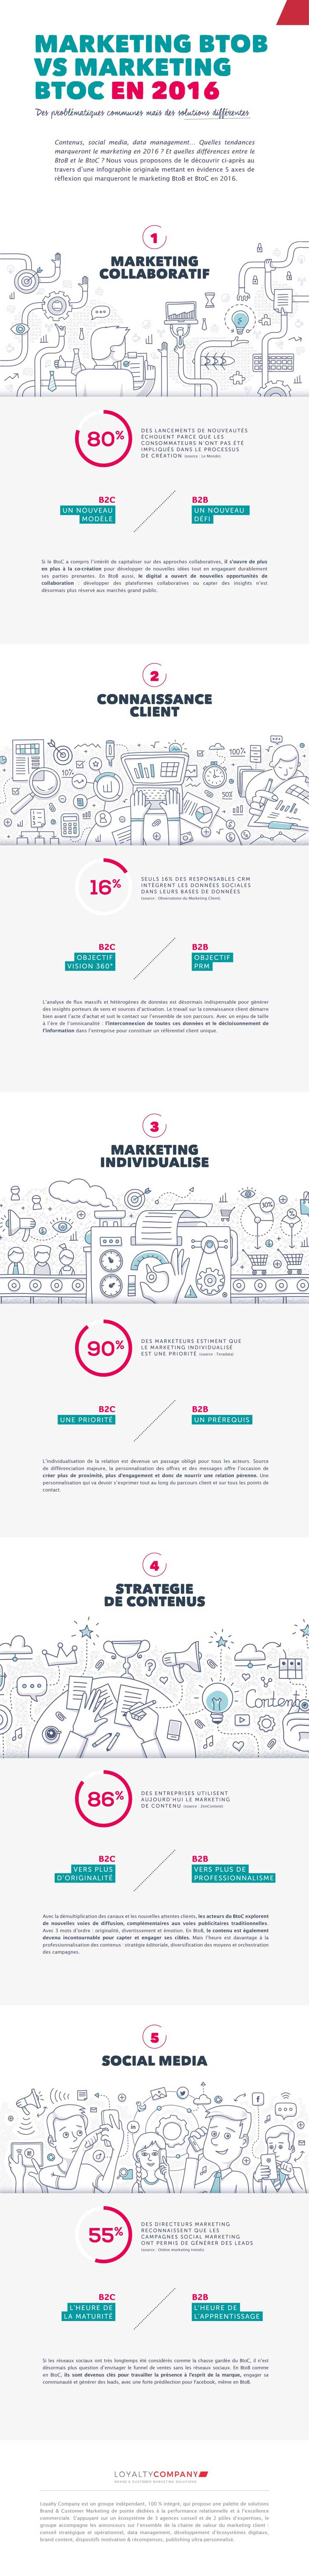 Infographie_MarketingBtoBvsBtoC_LoyaltyCompany-1100x9164